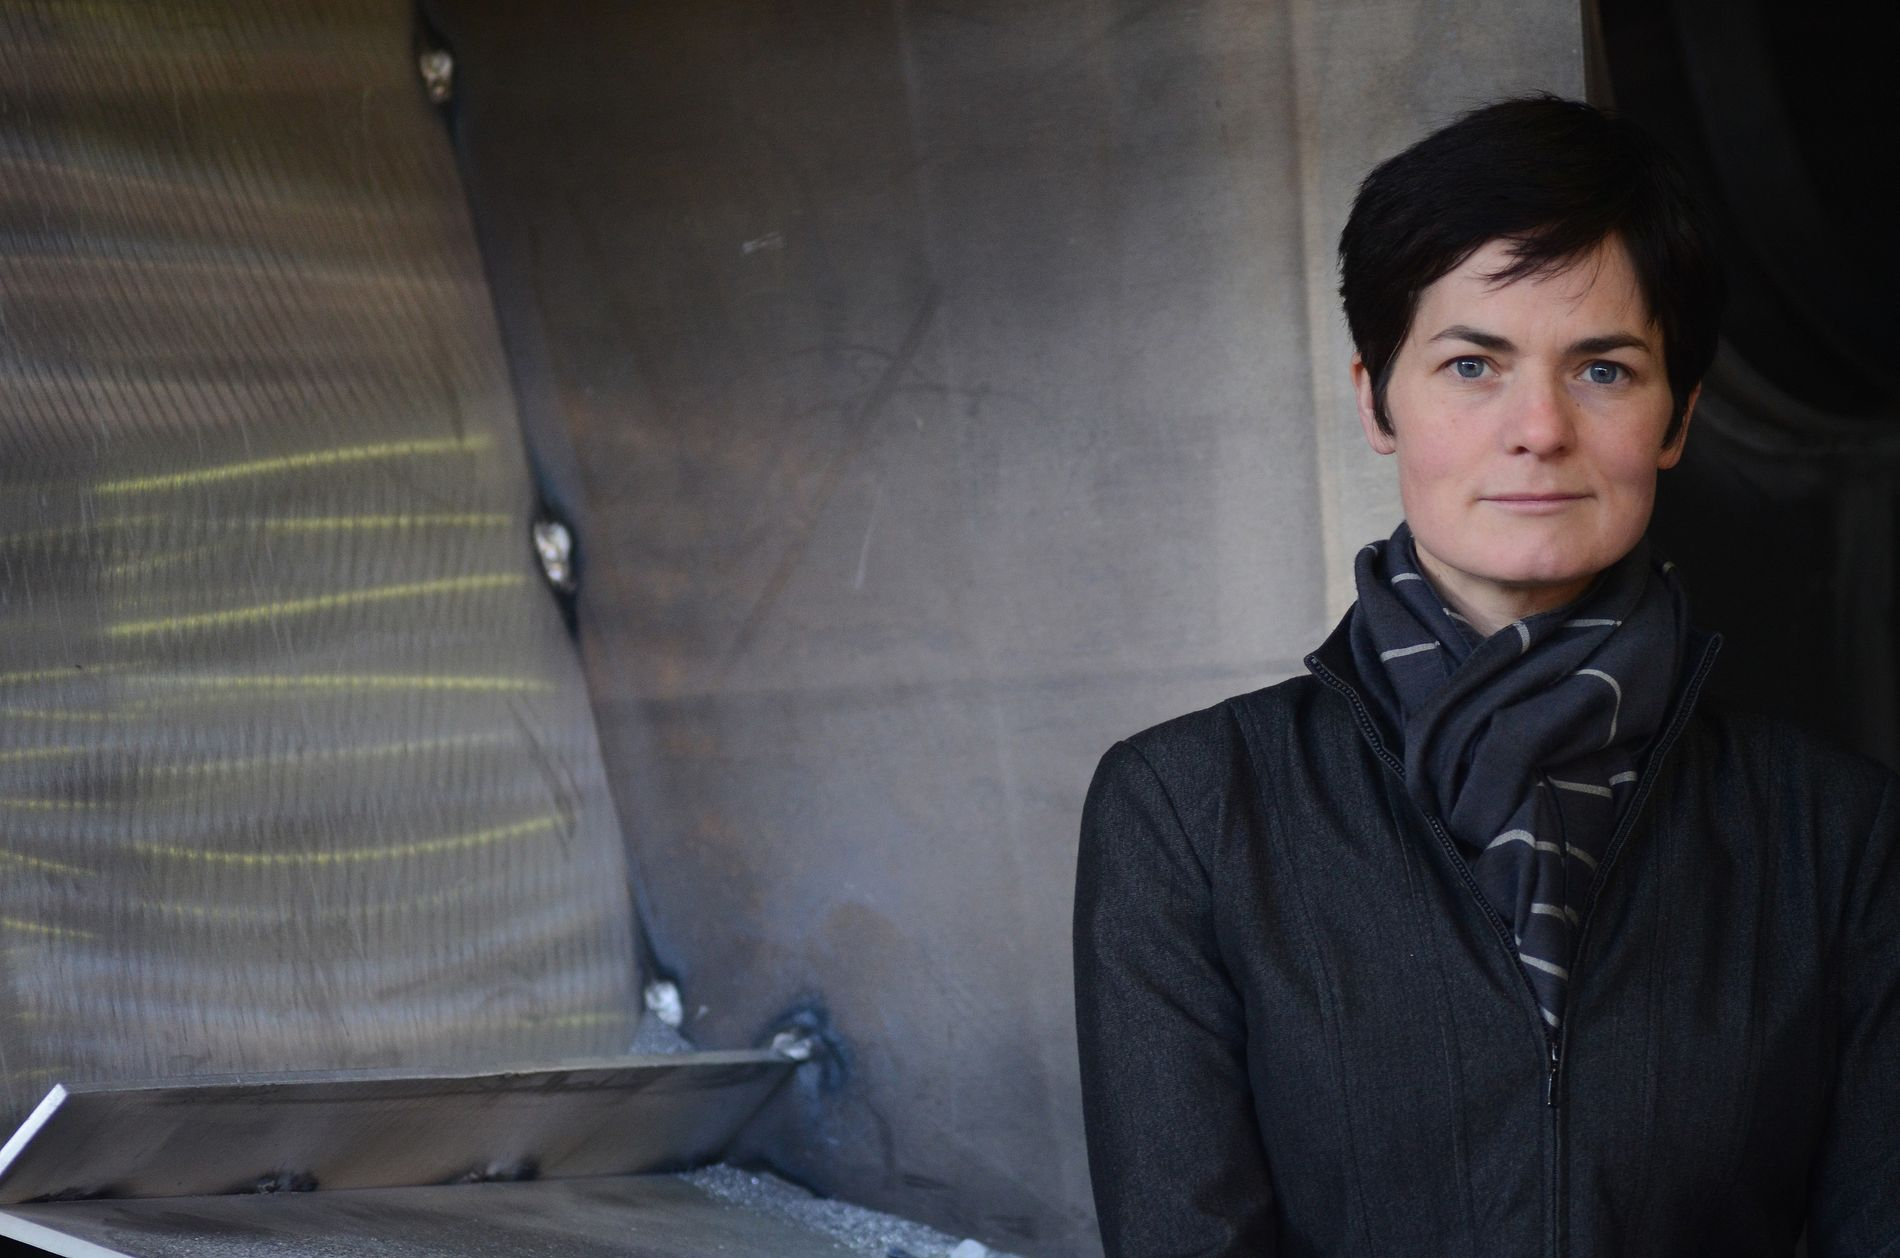 Dame Ellen MacArthur was inspired by her time on sailing boats to realise a new vision to our current take-make-dispose linear economy that is the root cause of today's challenging problems, including plastic waste.